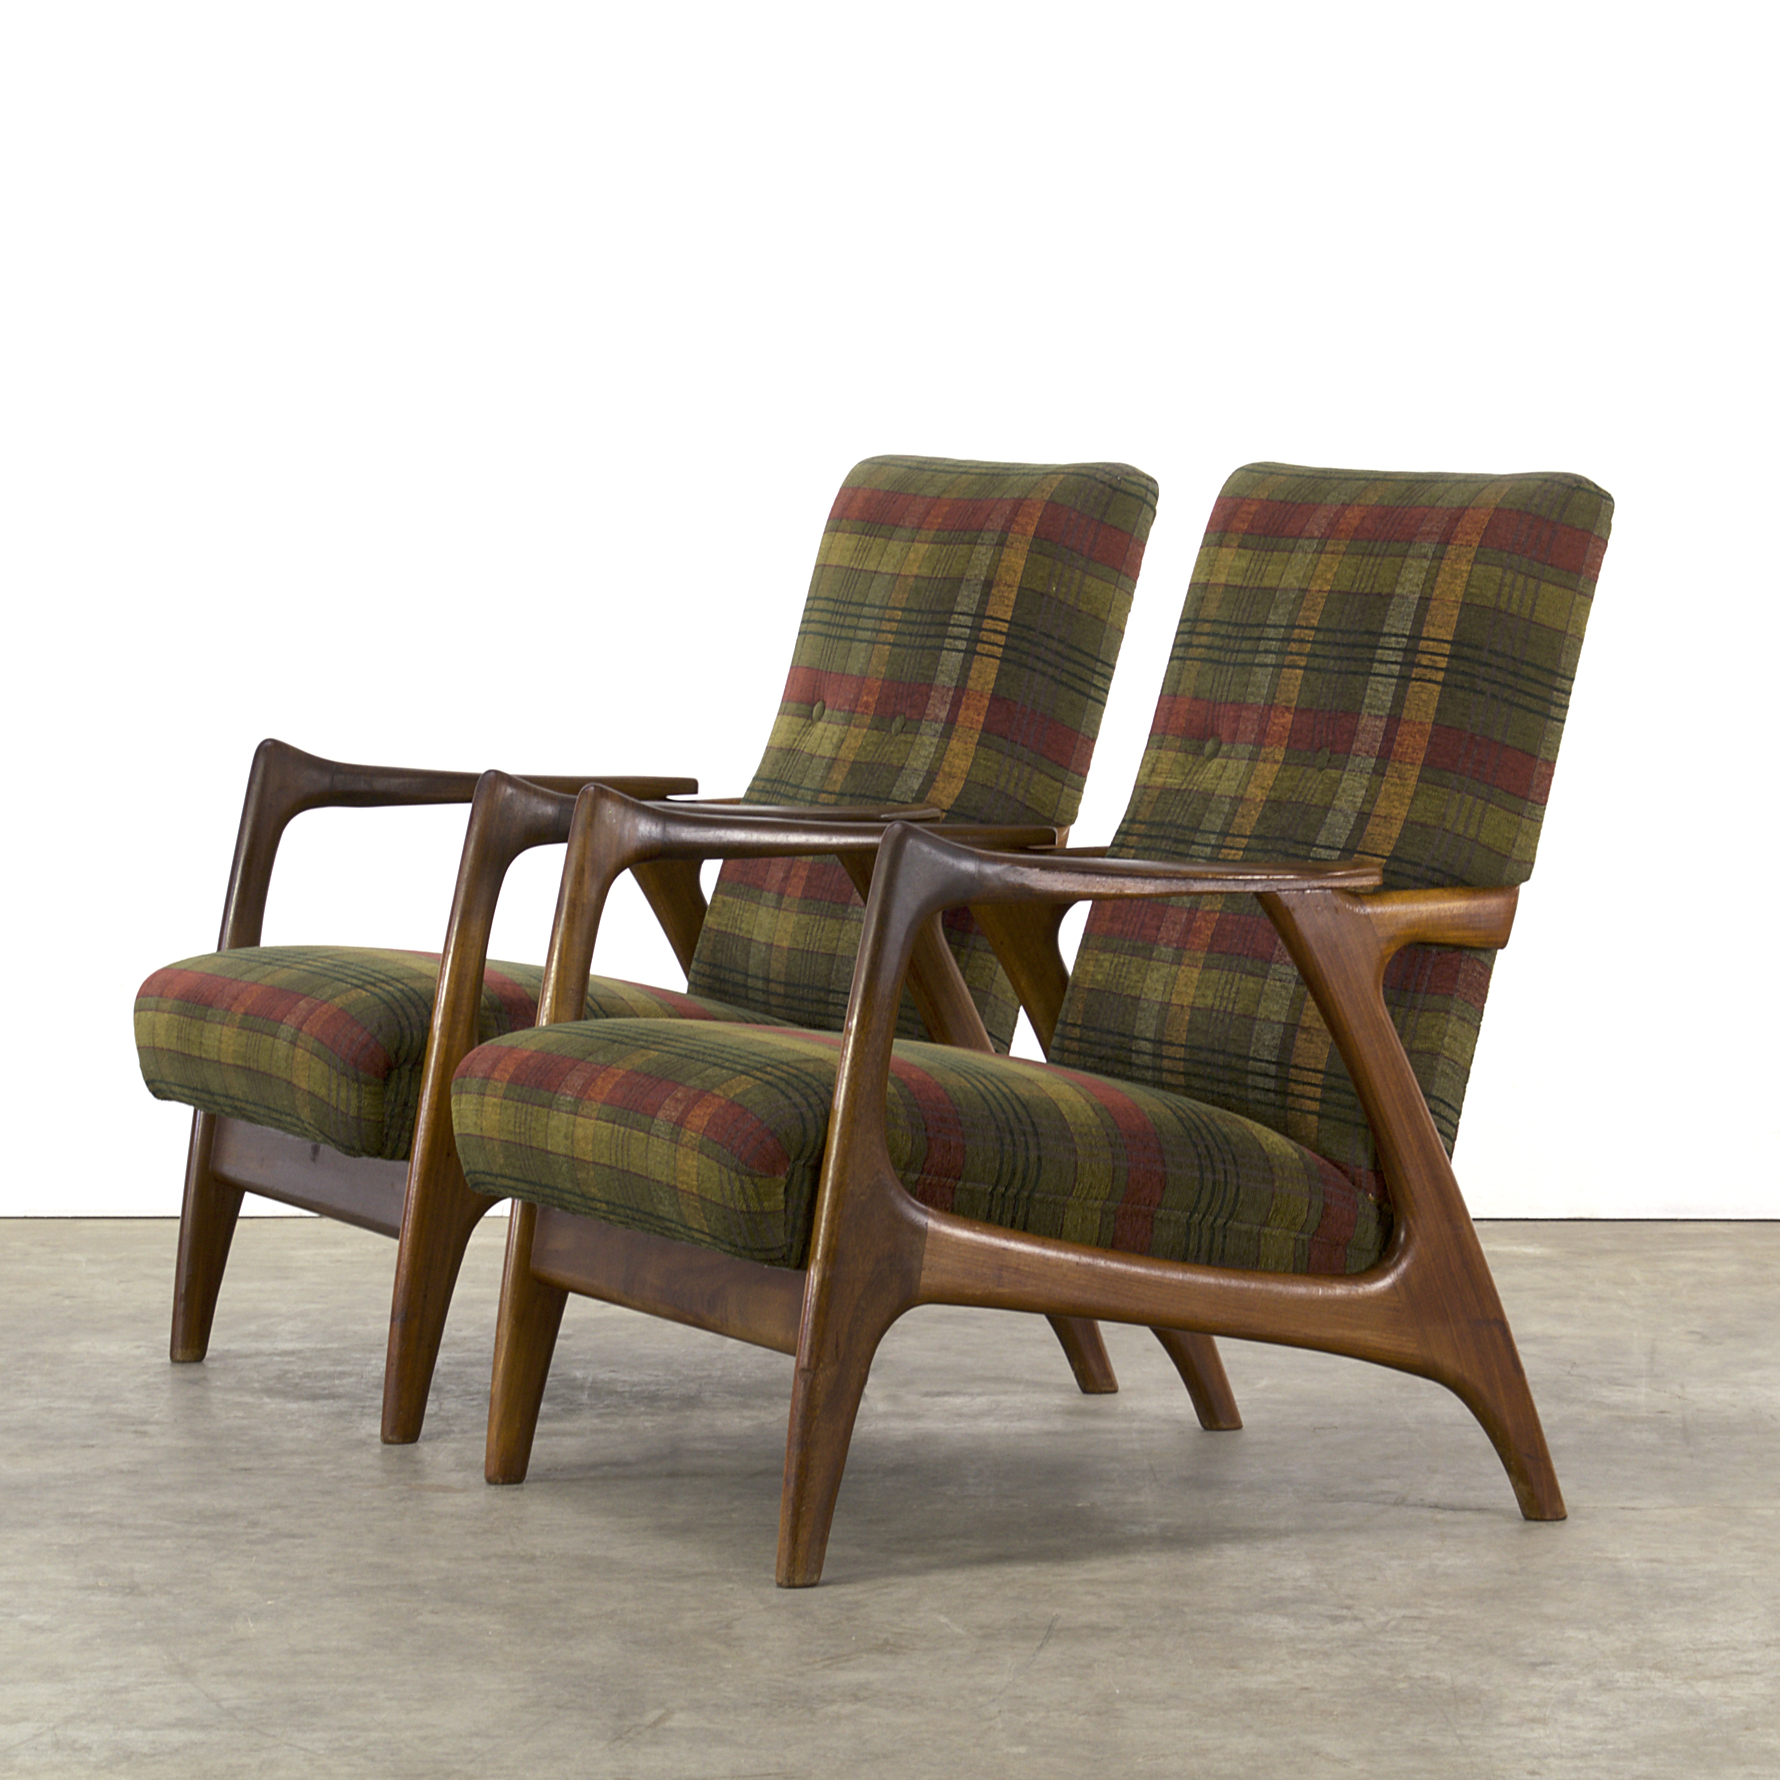 Midcentury fauteuils and or seating group 60s 70s set 2